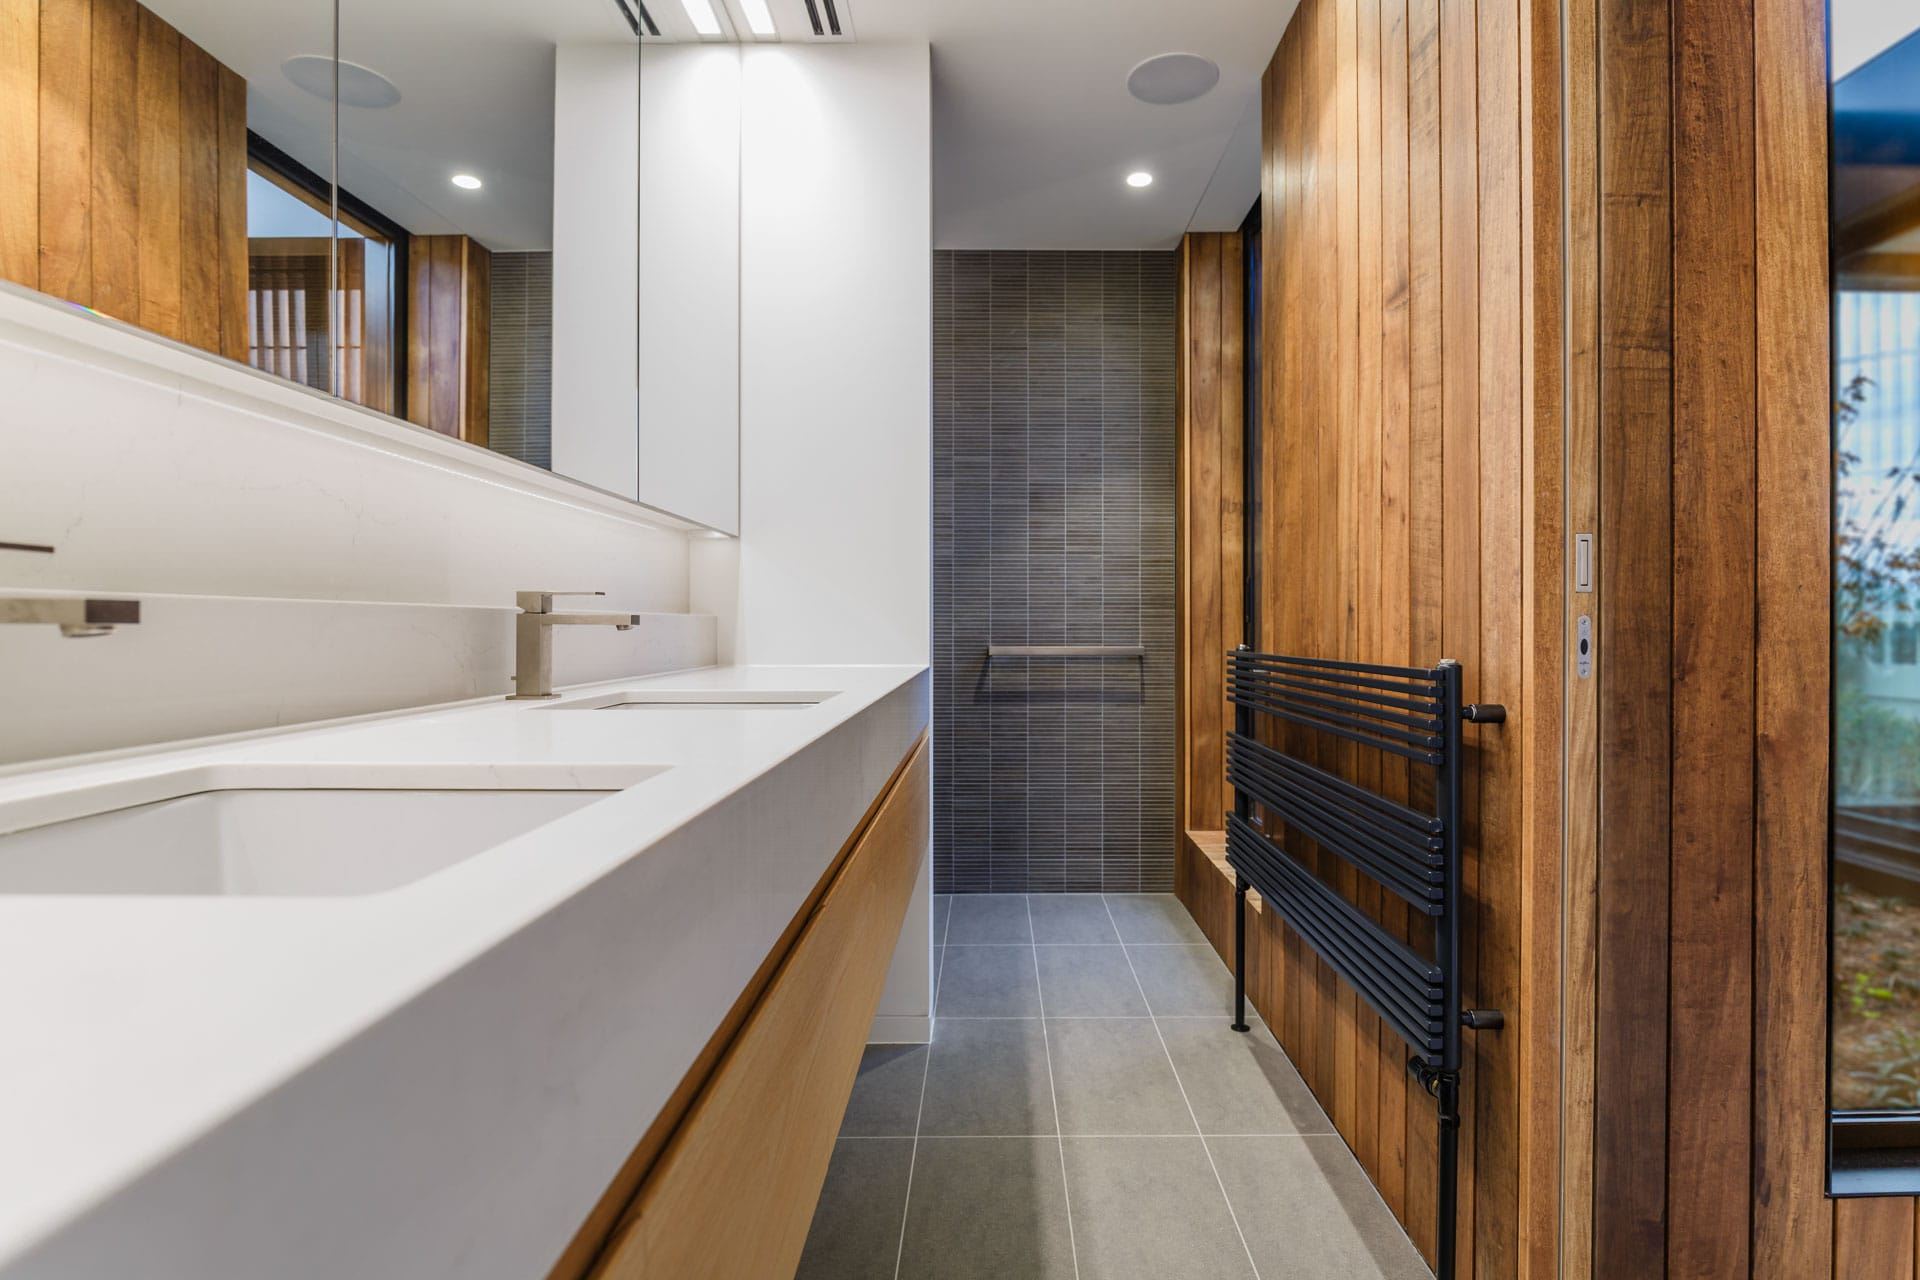 rtp-product-photography-h2o-hydronic-heating-wall-radiator-kew-house